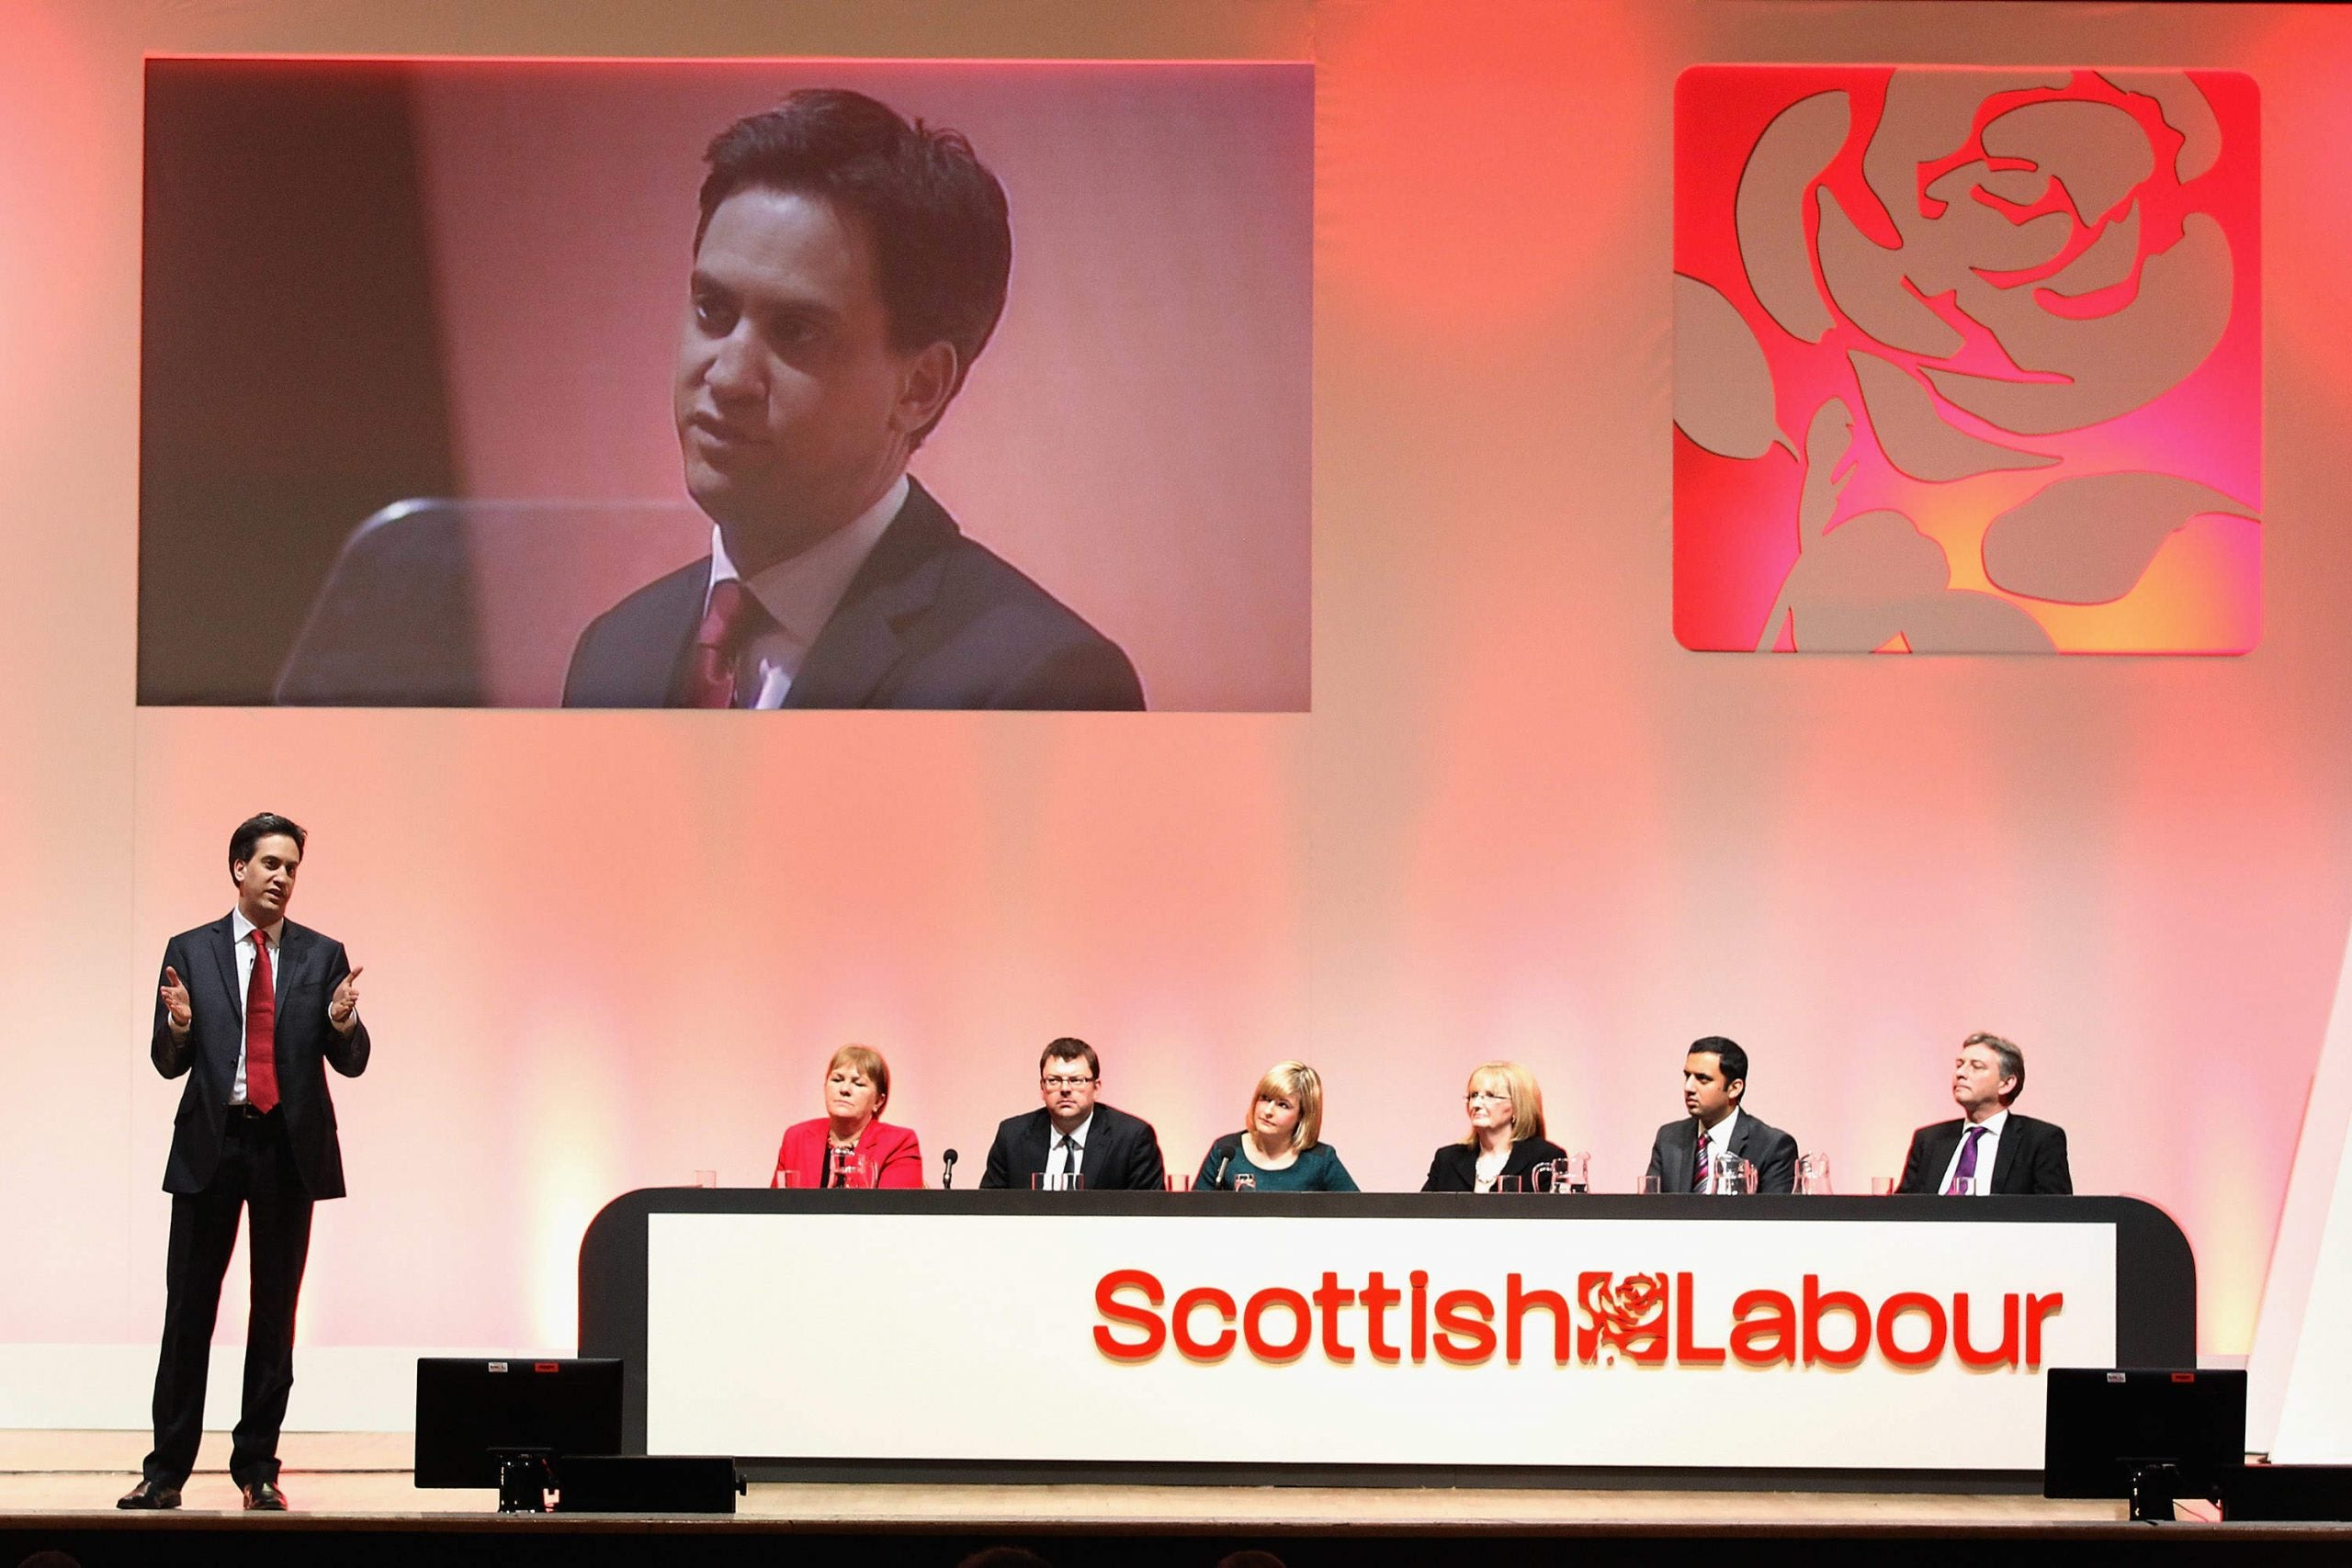 Labour struggles to define itself post referendum as the SNP continue to rise